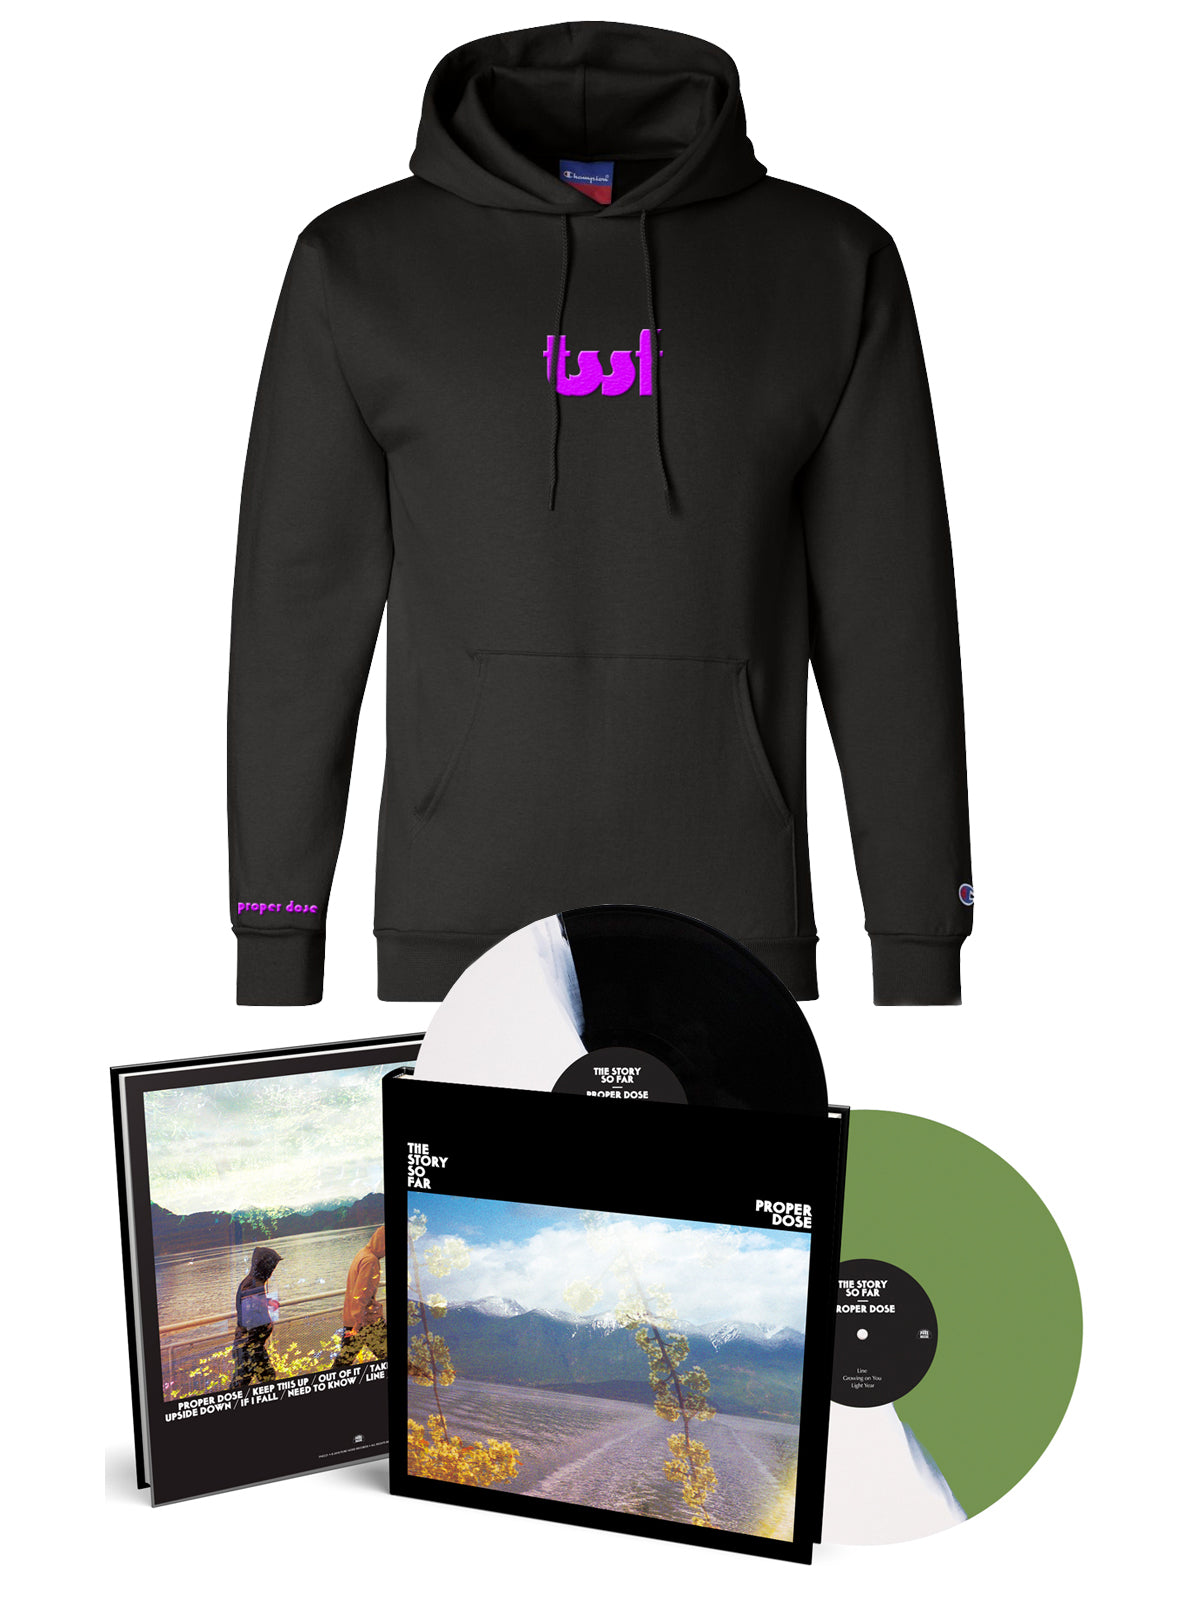 The Story so Far - Proper Dose Deluxe 2xLP and Hoodie - Merch Limited